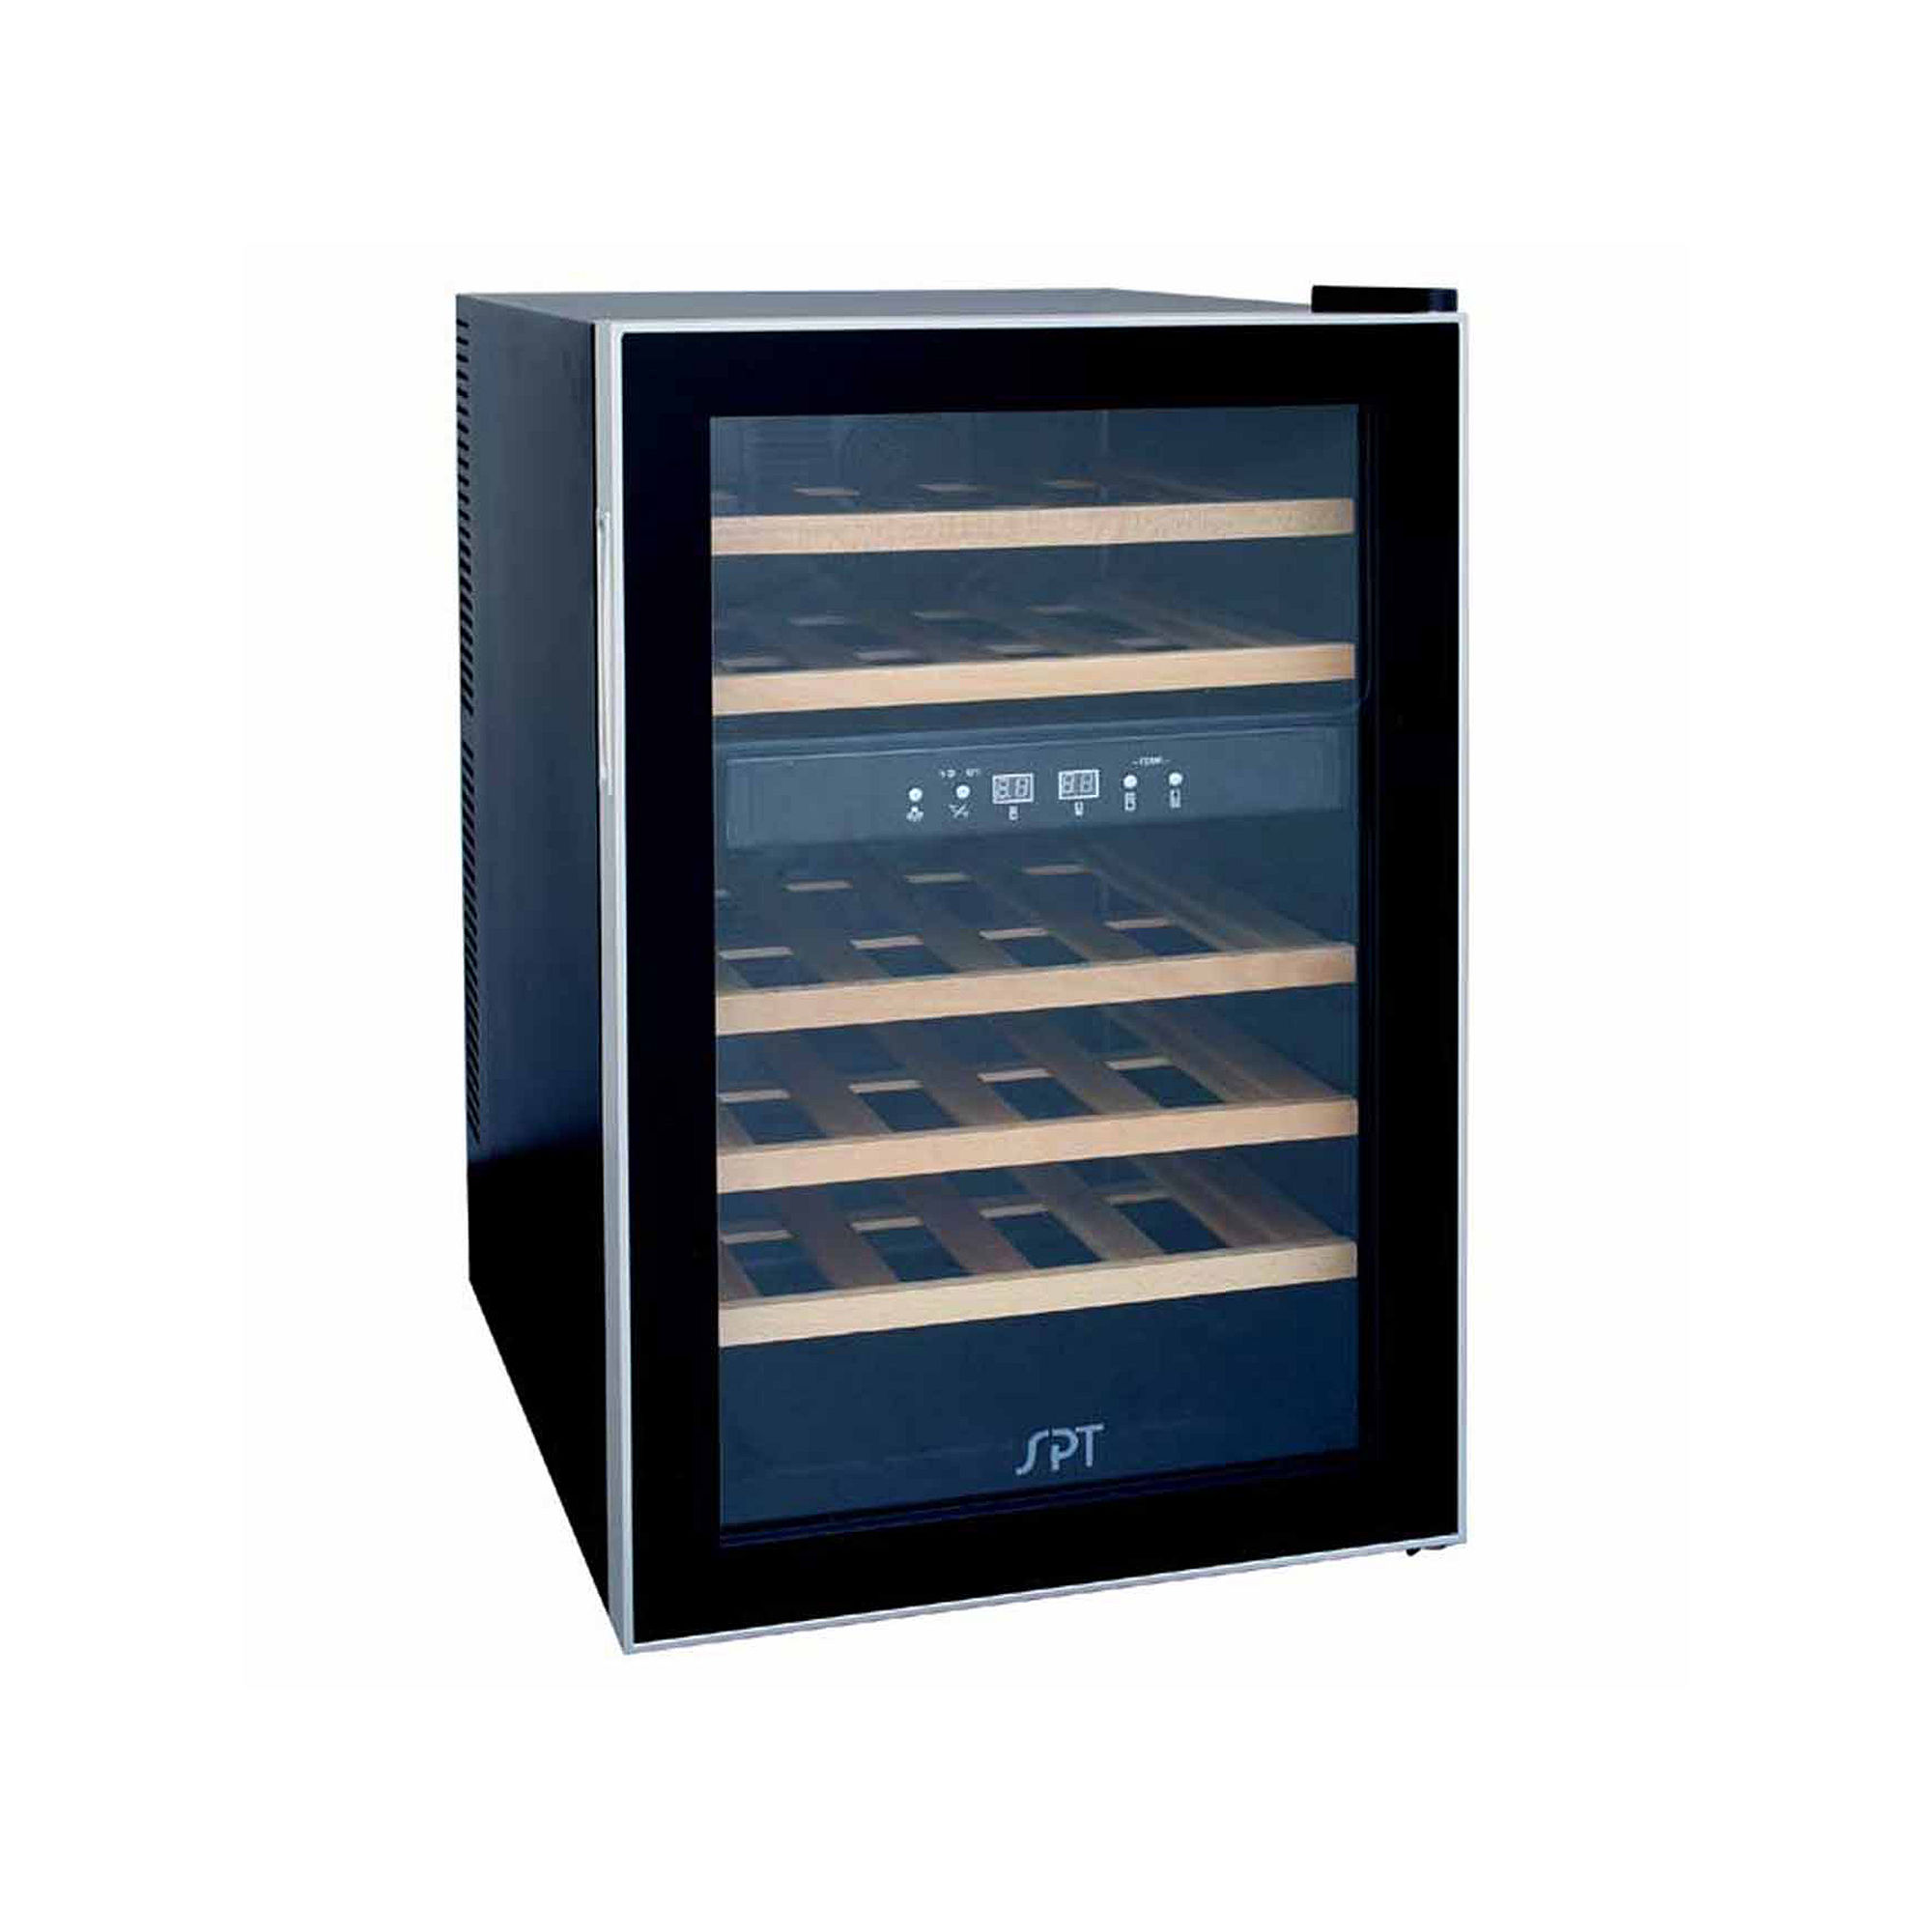 SPT WC-2463W: Dual-Zone Thermo-Electric Wine Cooler with Wooden Shelves 24-bottles